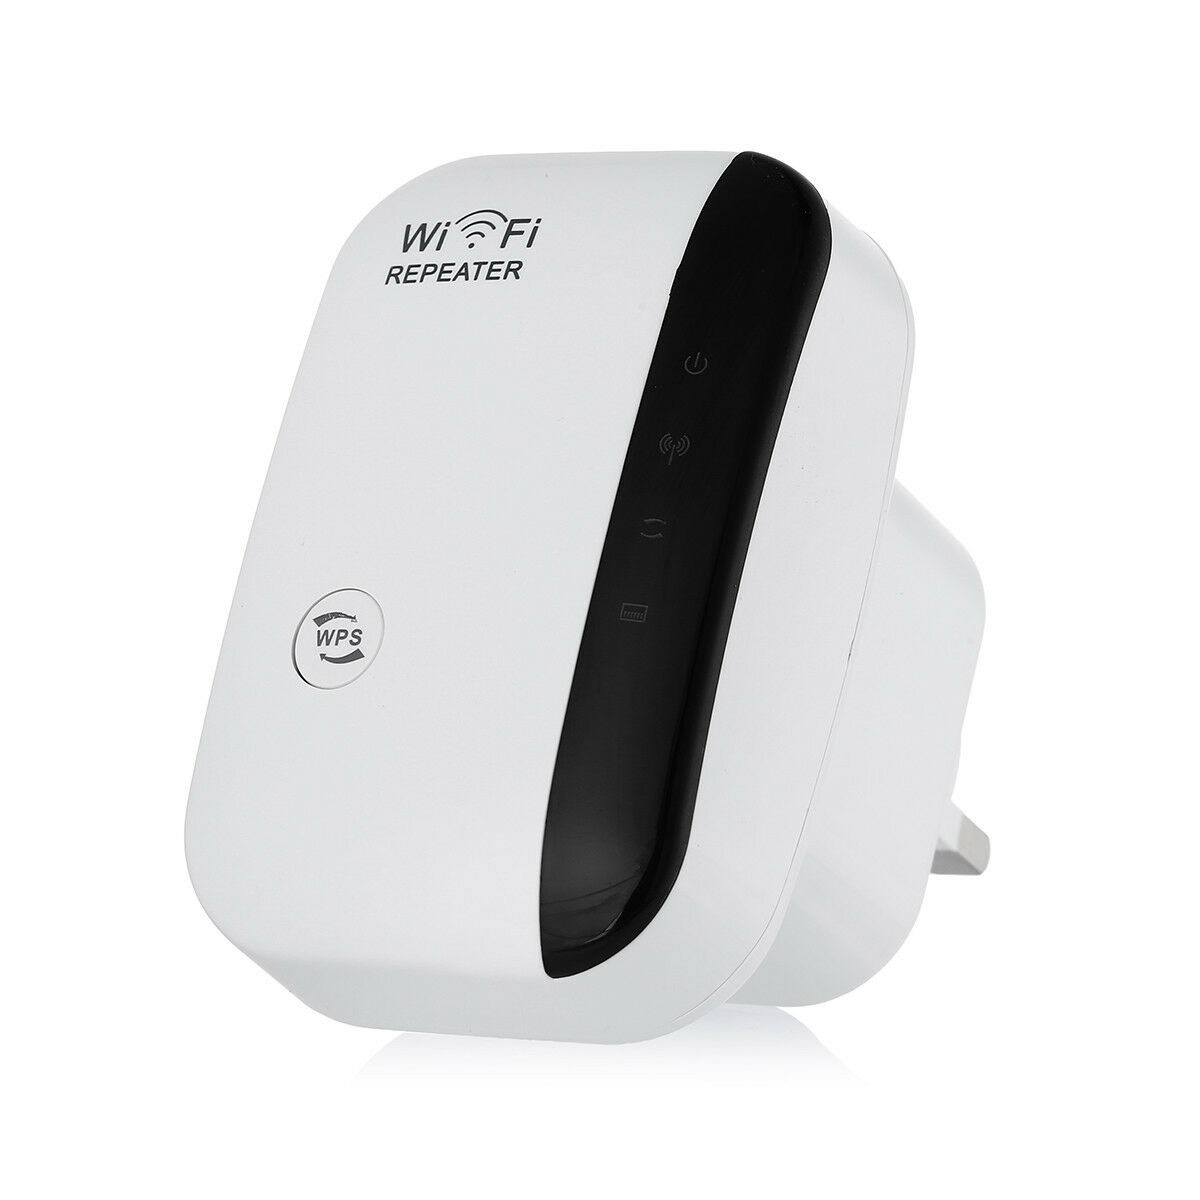 300Mbps Wifi Repeater Wireless-N 802.11 AP Router Extender Signal Booster Range 7